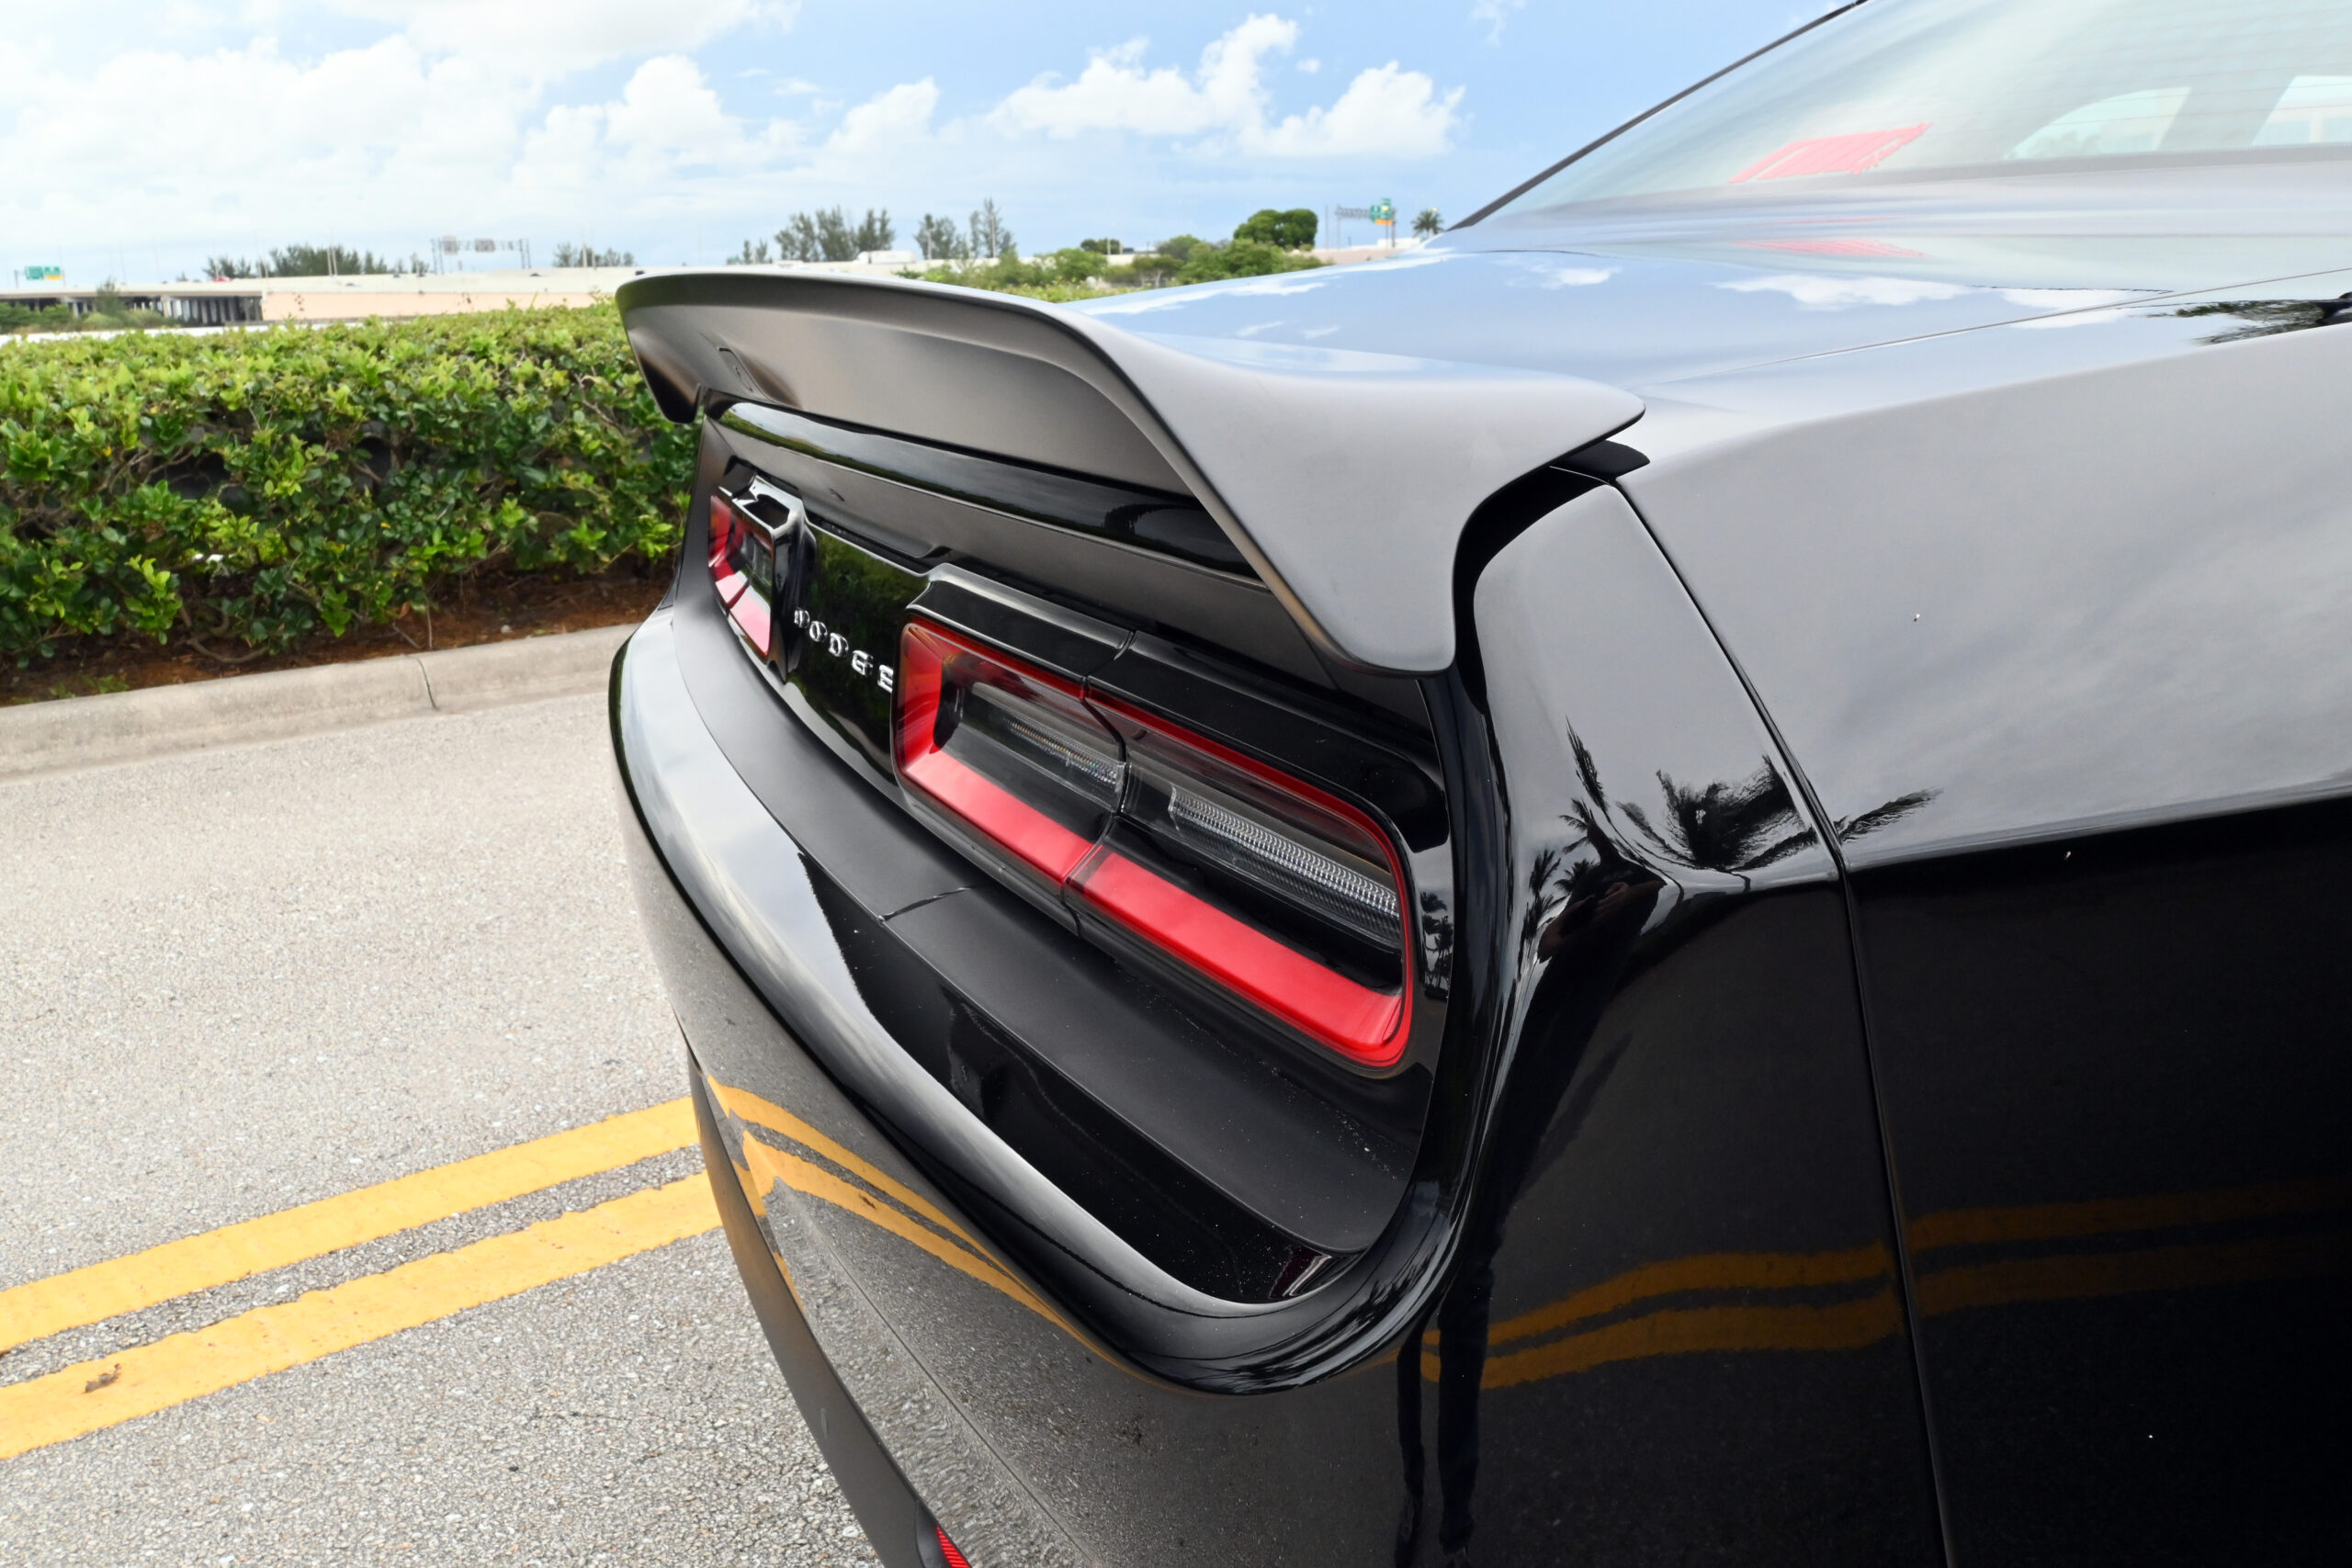 2020 Dodge Challenger SRT Superstock – One owner, 2500 miles, one of less than 200 Superstocks made in 2020, Loaded with options, Dealer serviced, Original Window Sticker